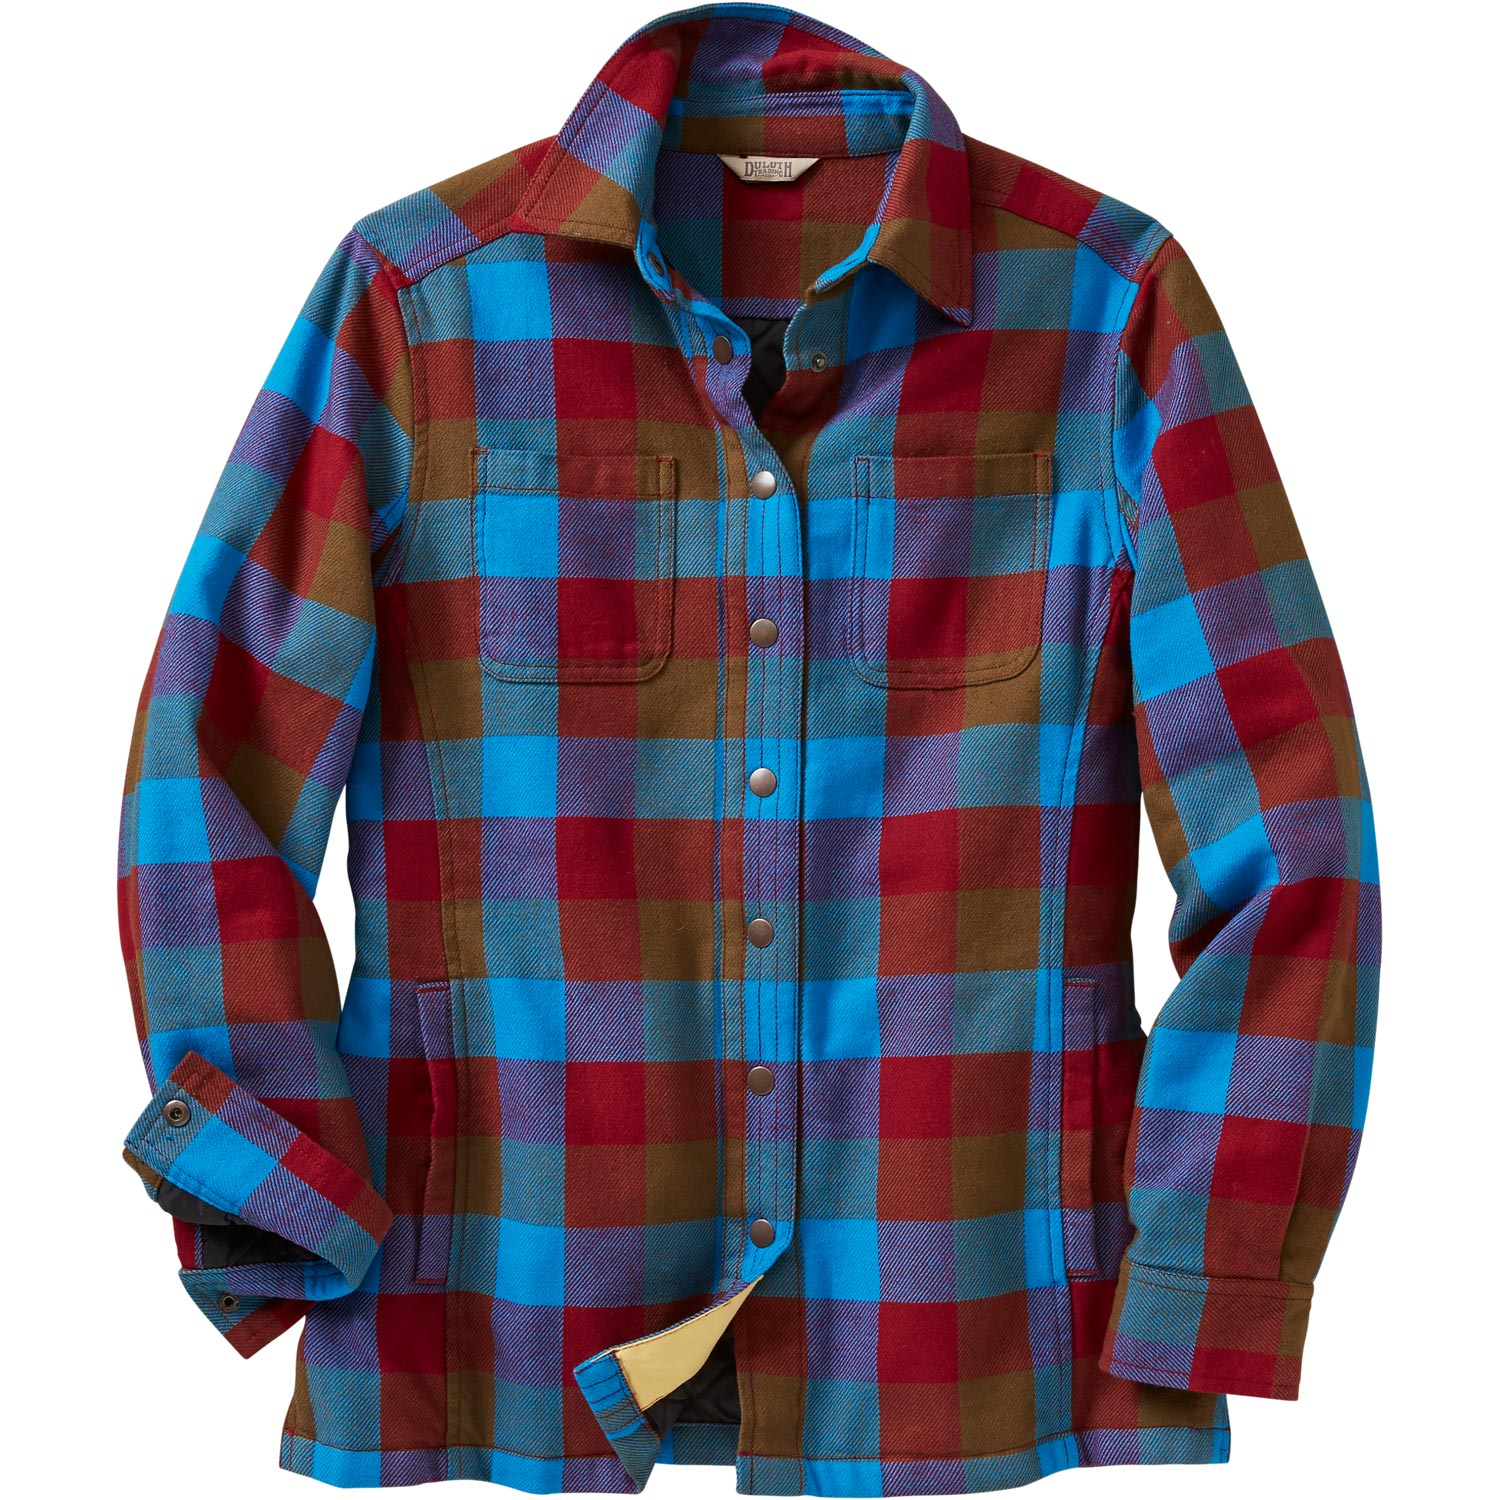 Flannel clipart flannel shirt Trading Flannel Flapjack Jac Shirt